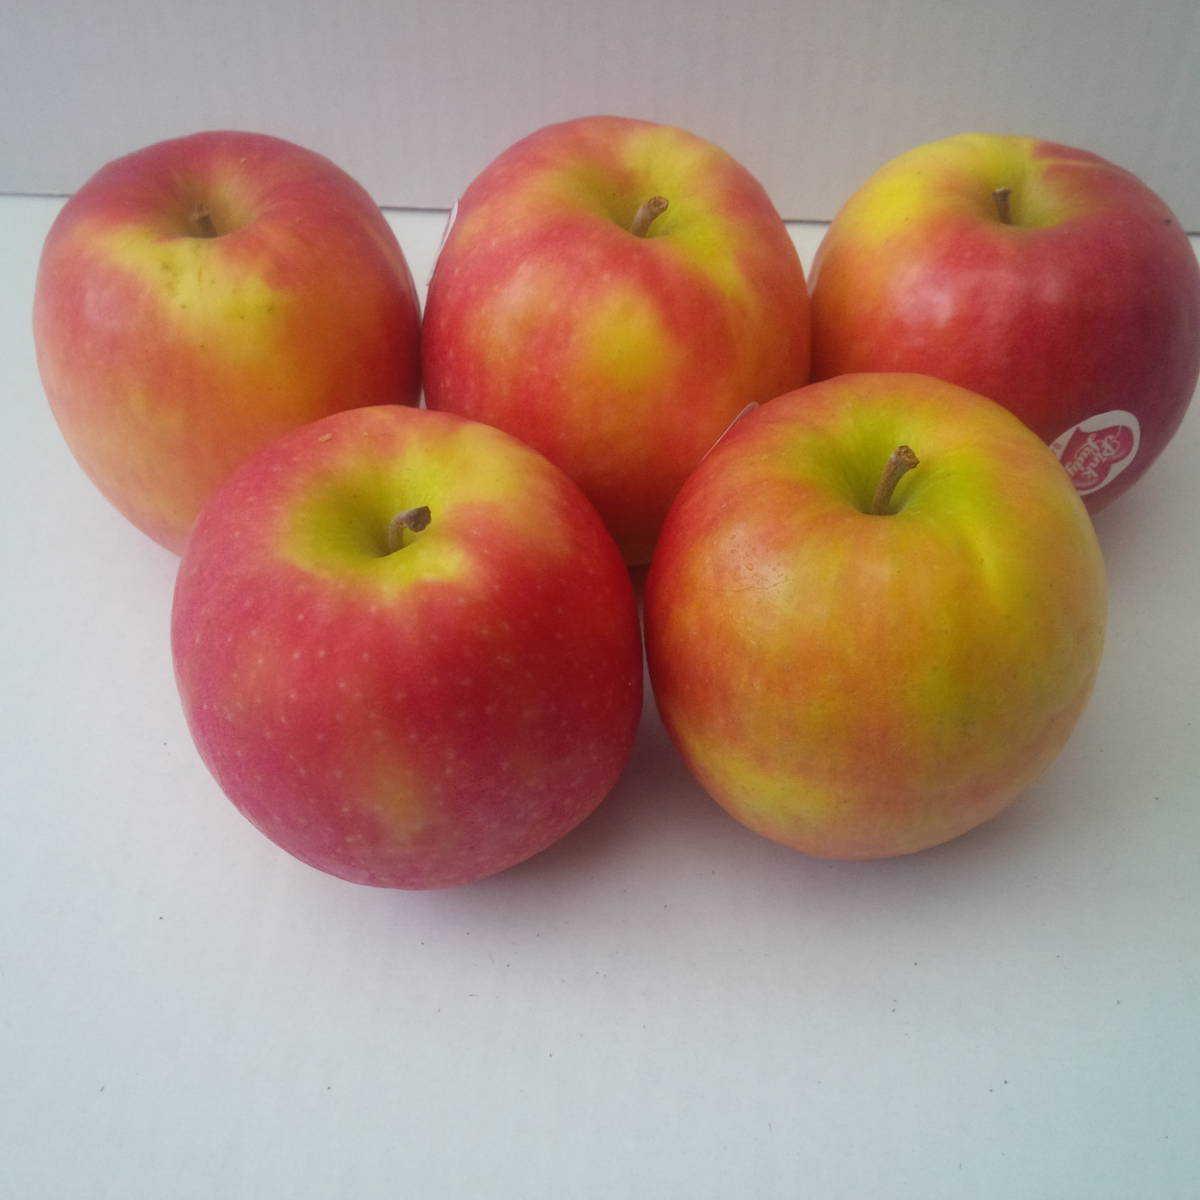 Pink Lady Apples - The Northampton Grocer